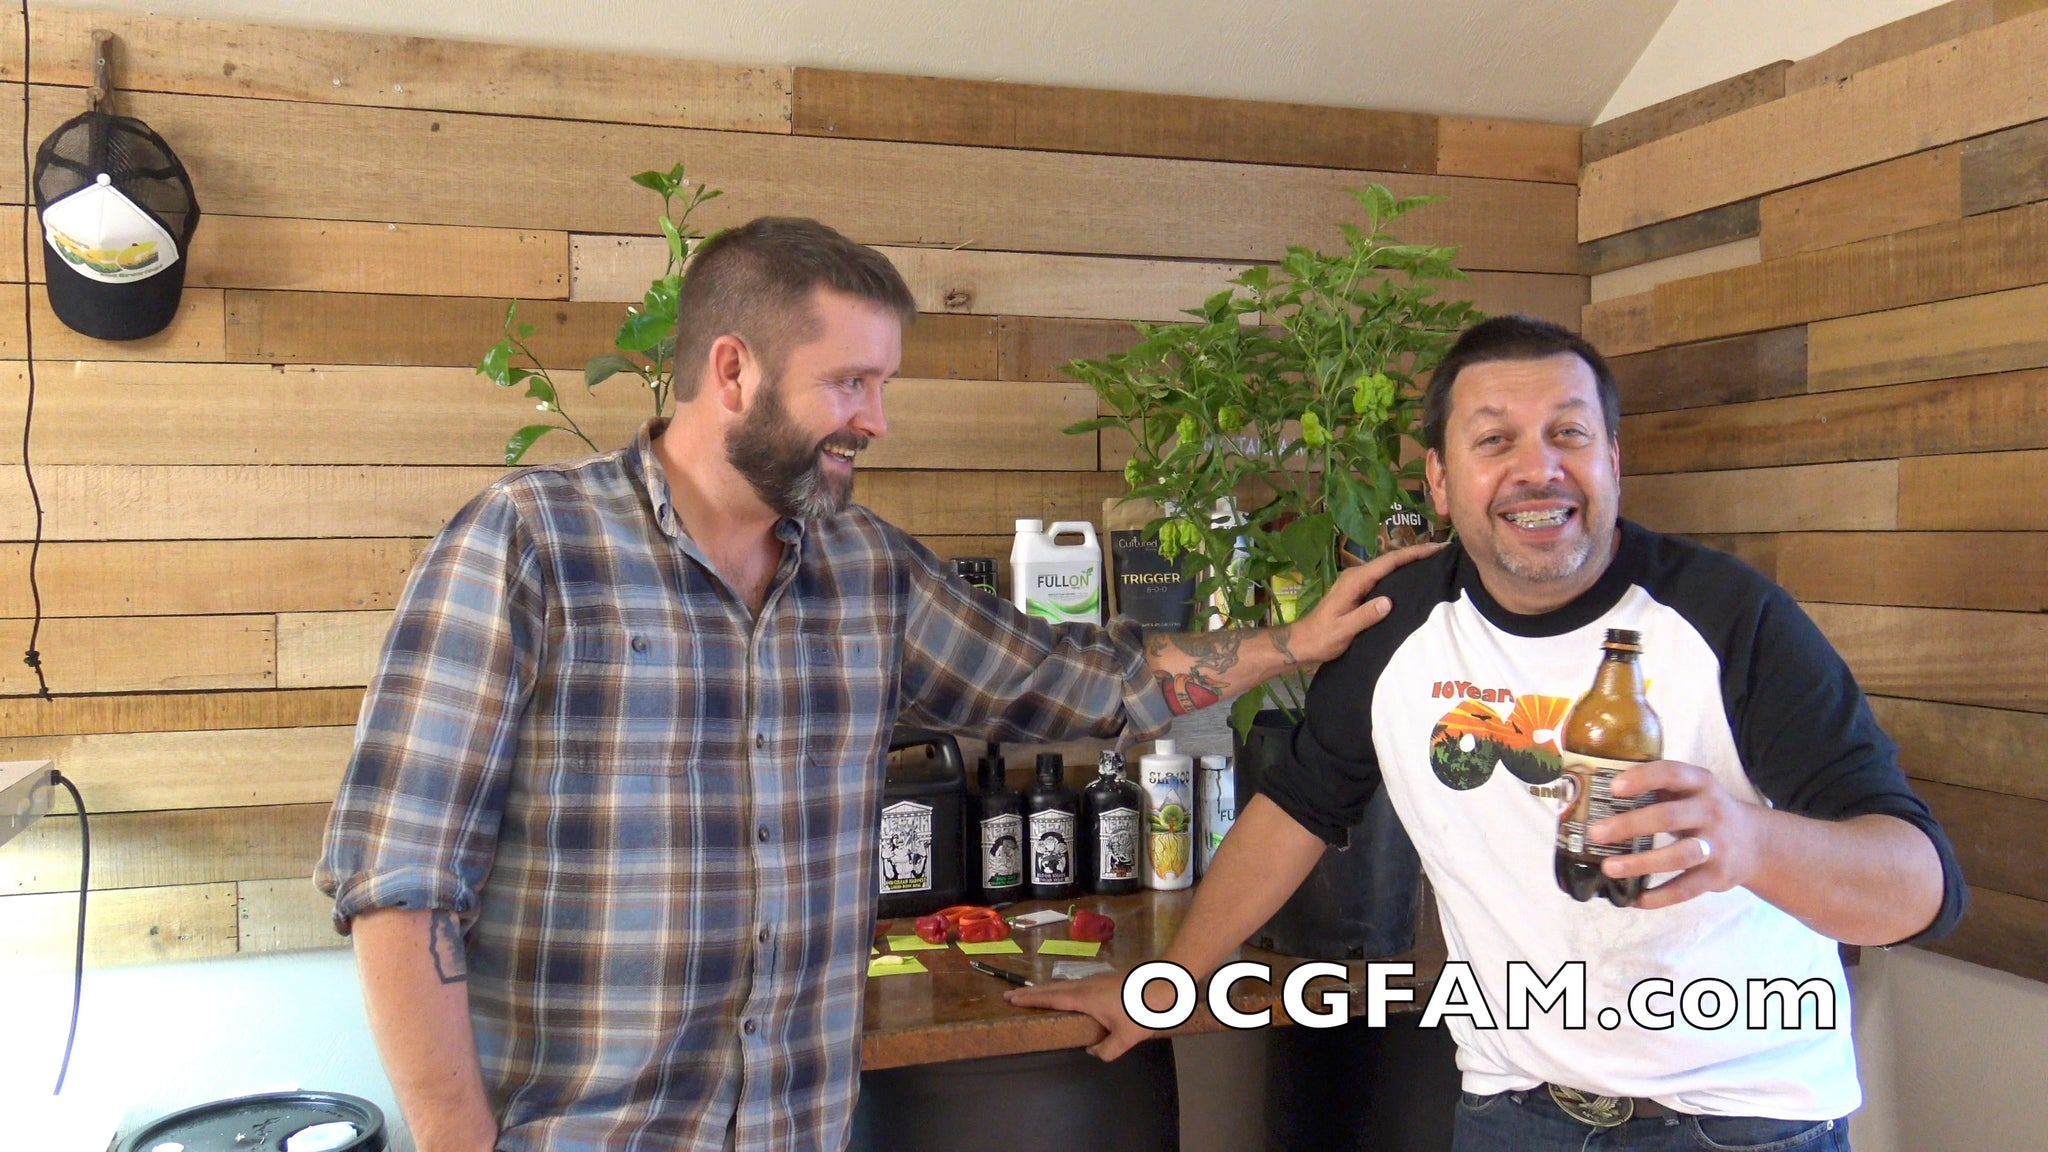 OCGFAM Show: Thursday, September 21st